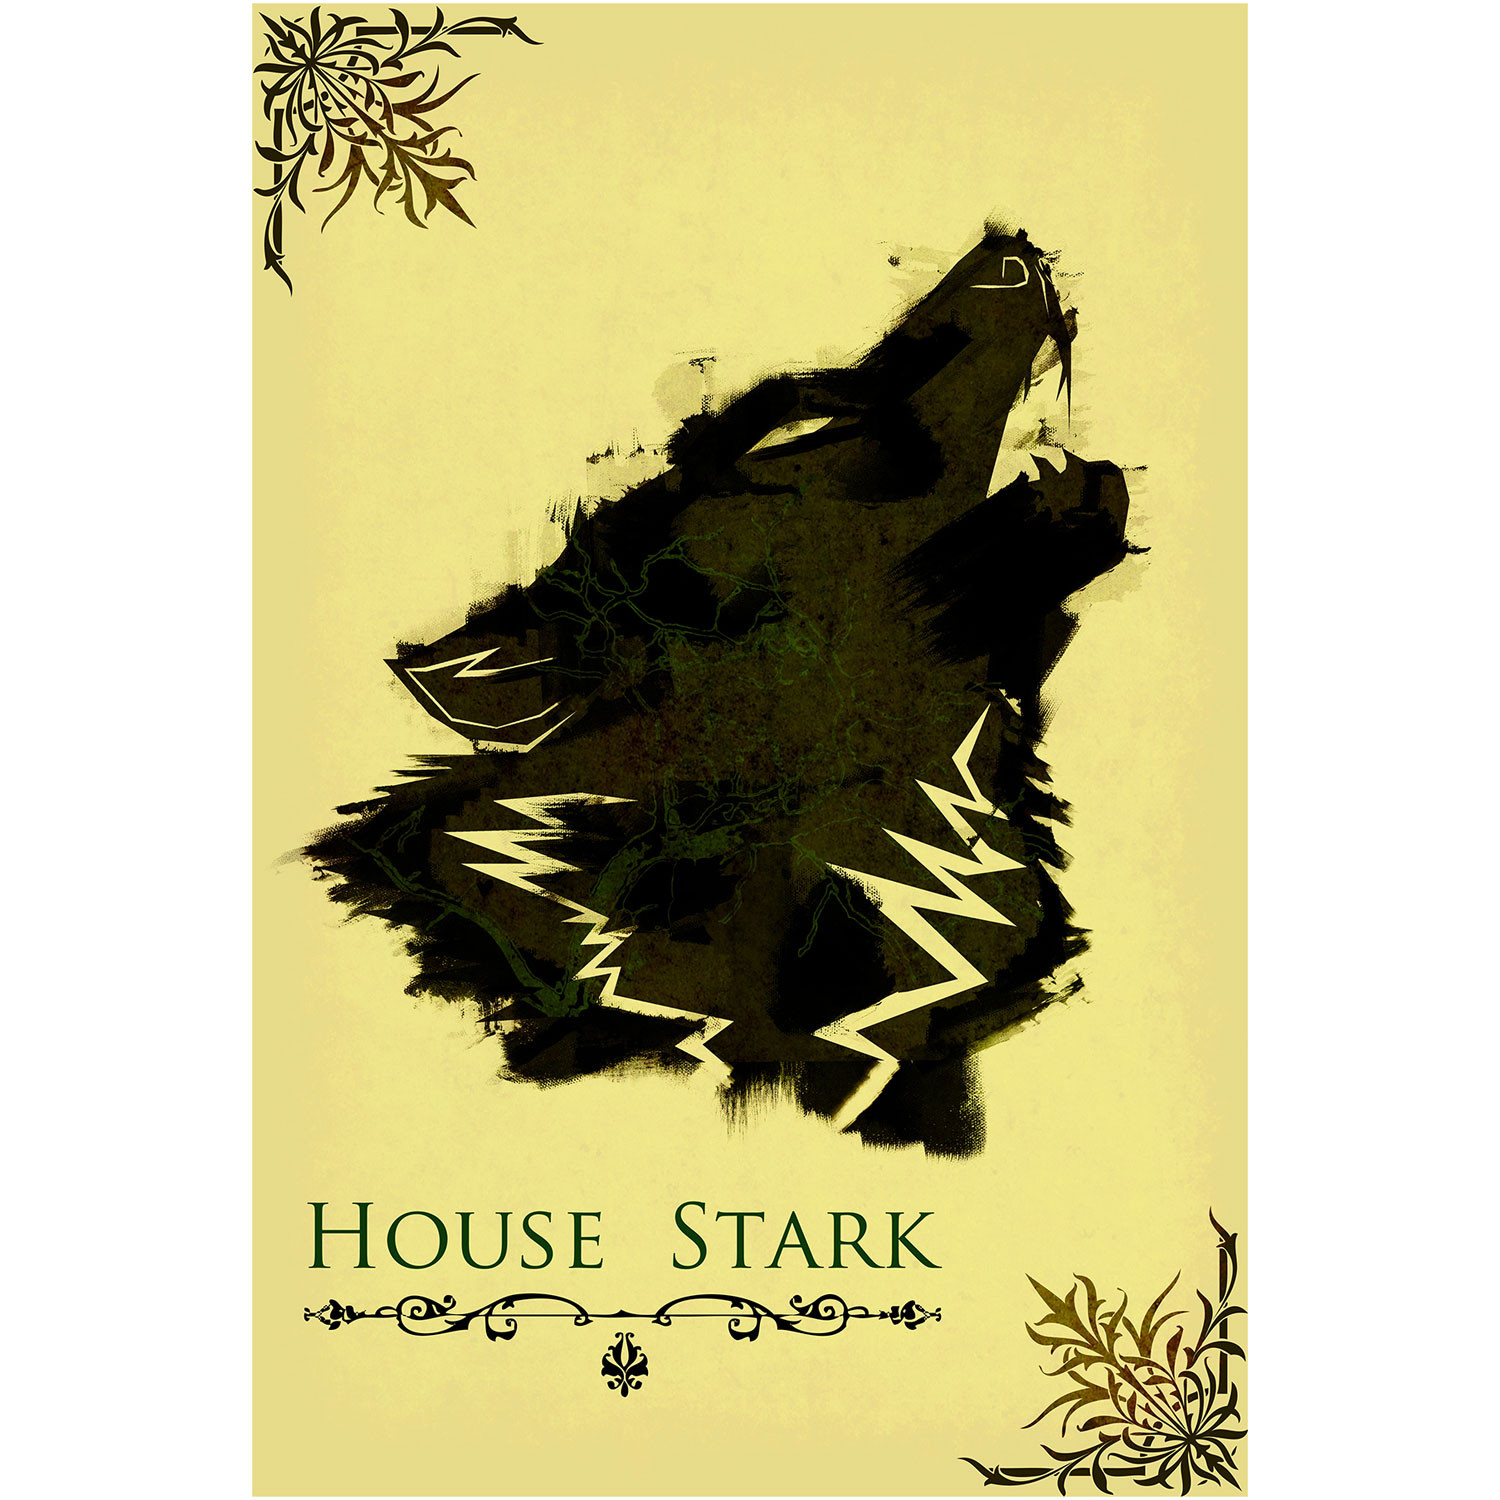 Of Thrones Movie Poster House Stark 12 X